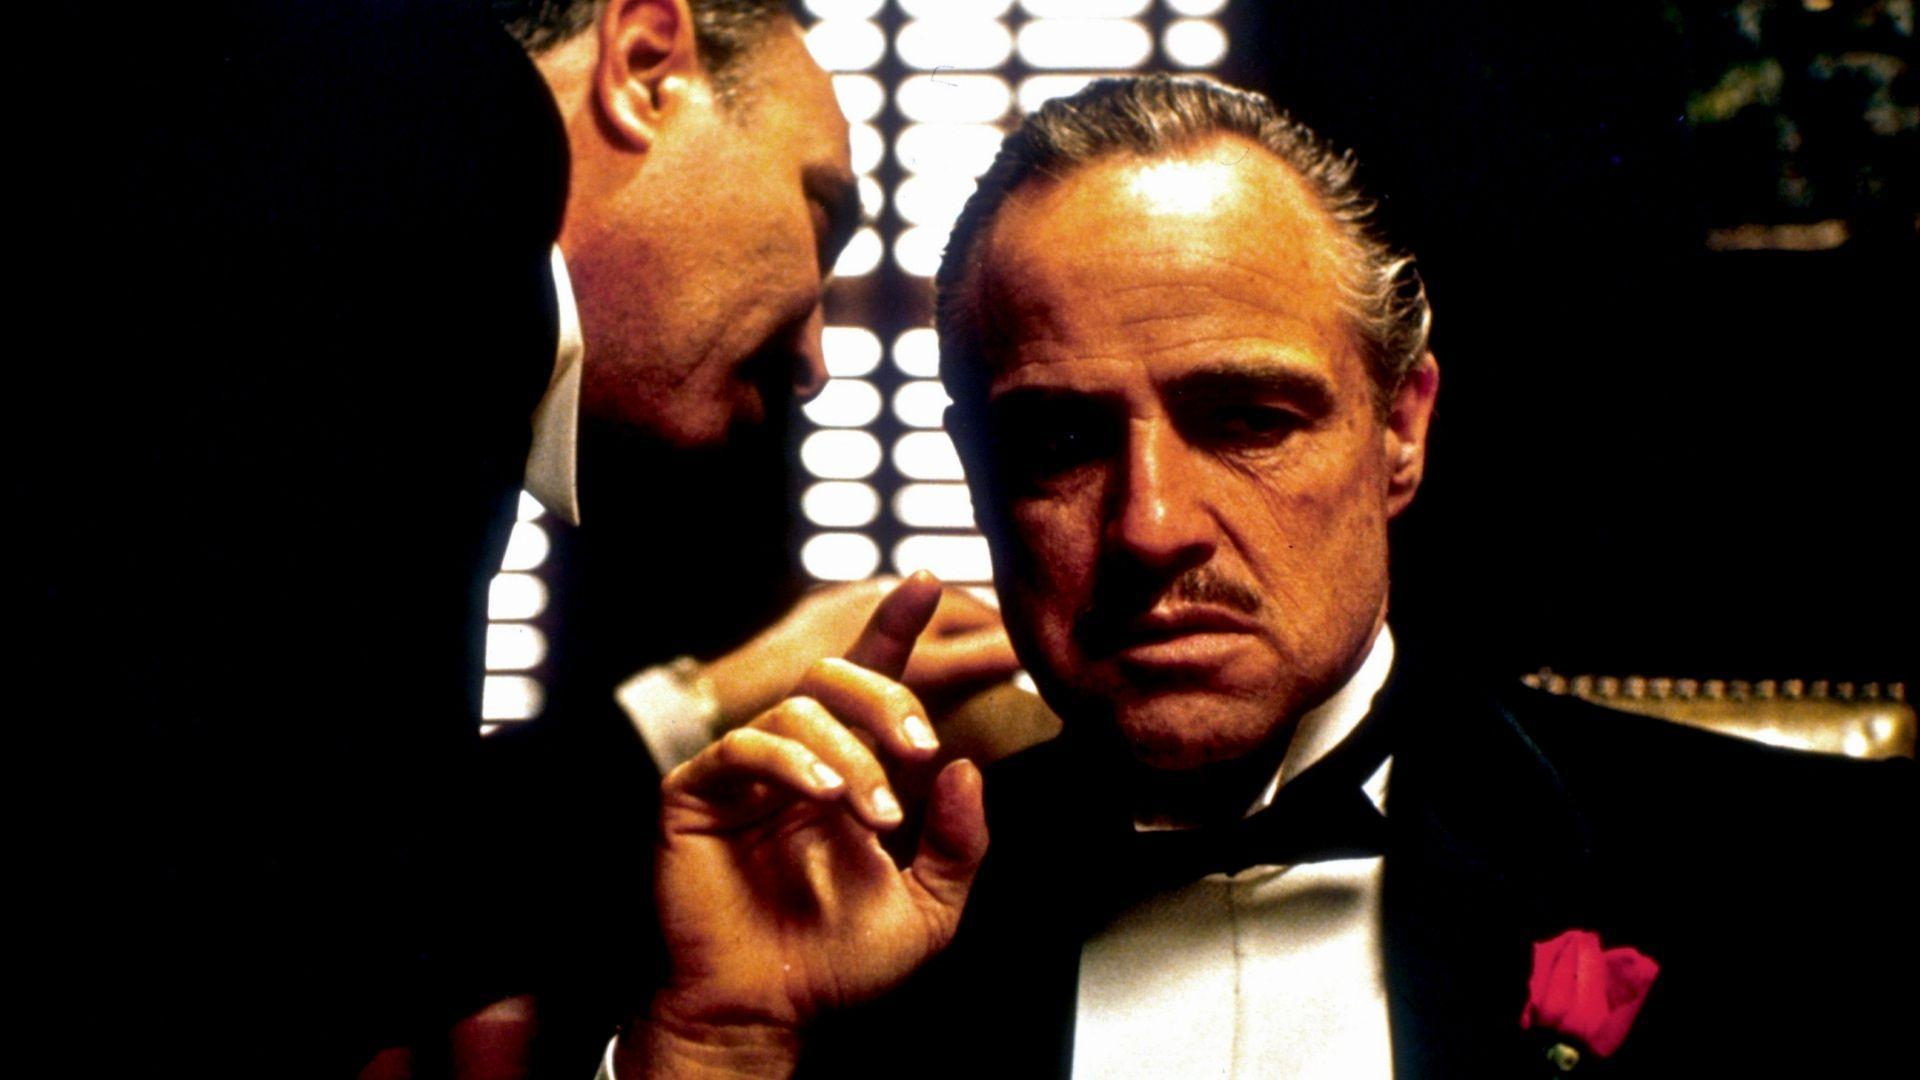 Vito Corleone Wallpapers 1920x1080